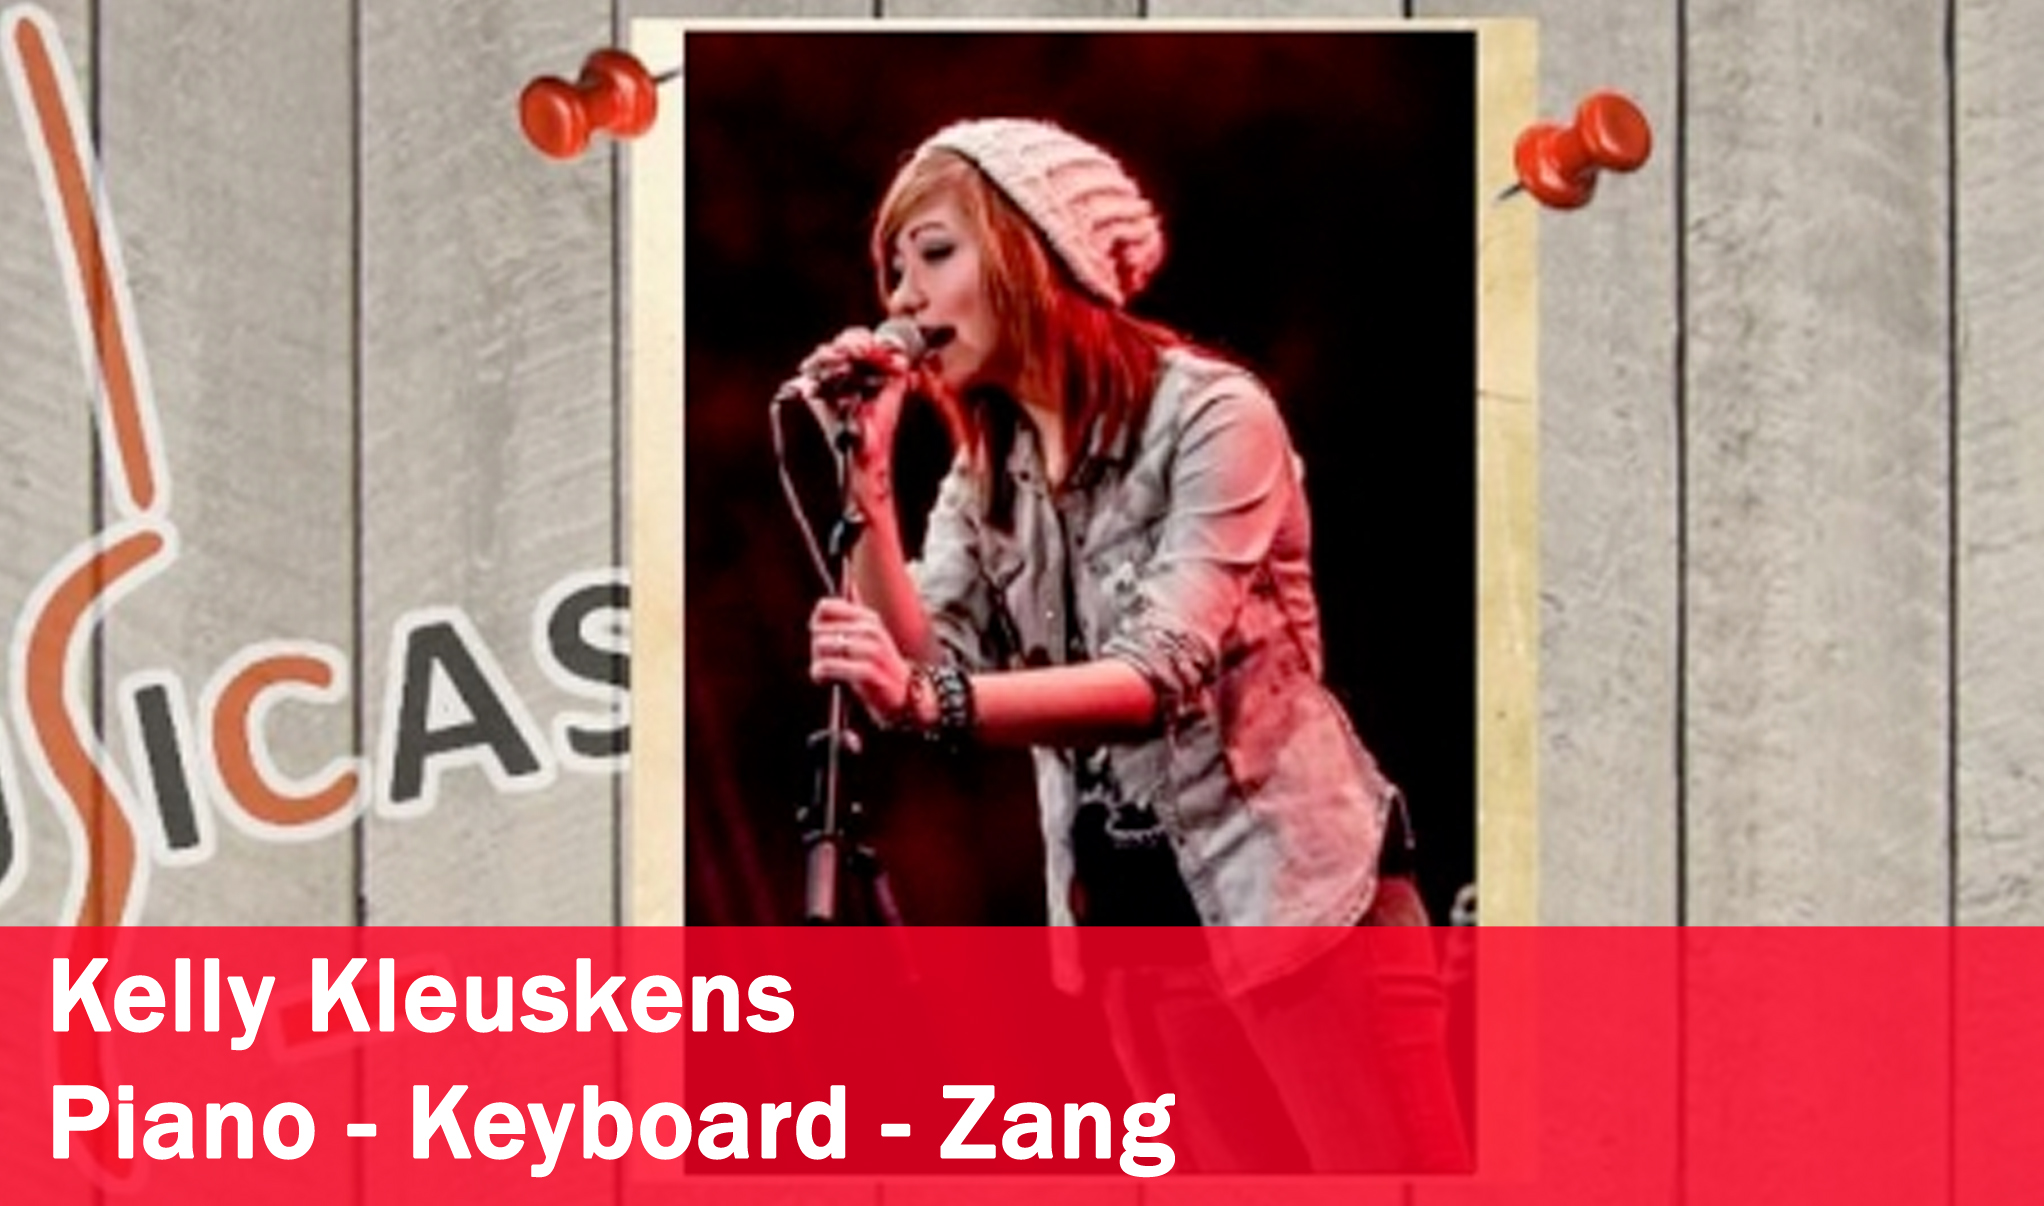 Kelly Kleuskens <br>Piano - Keyboard - Zang